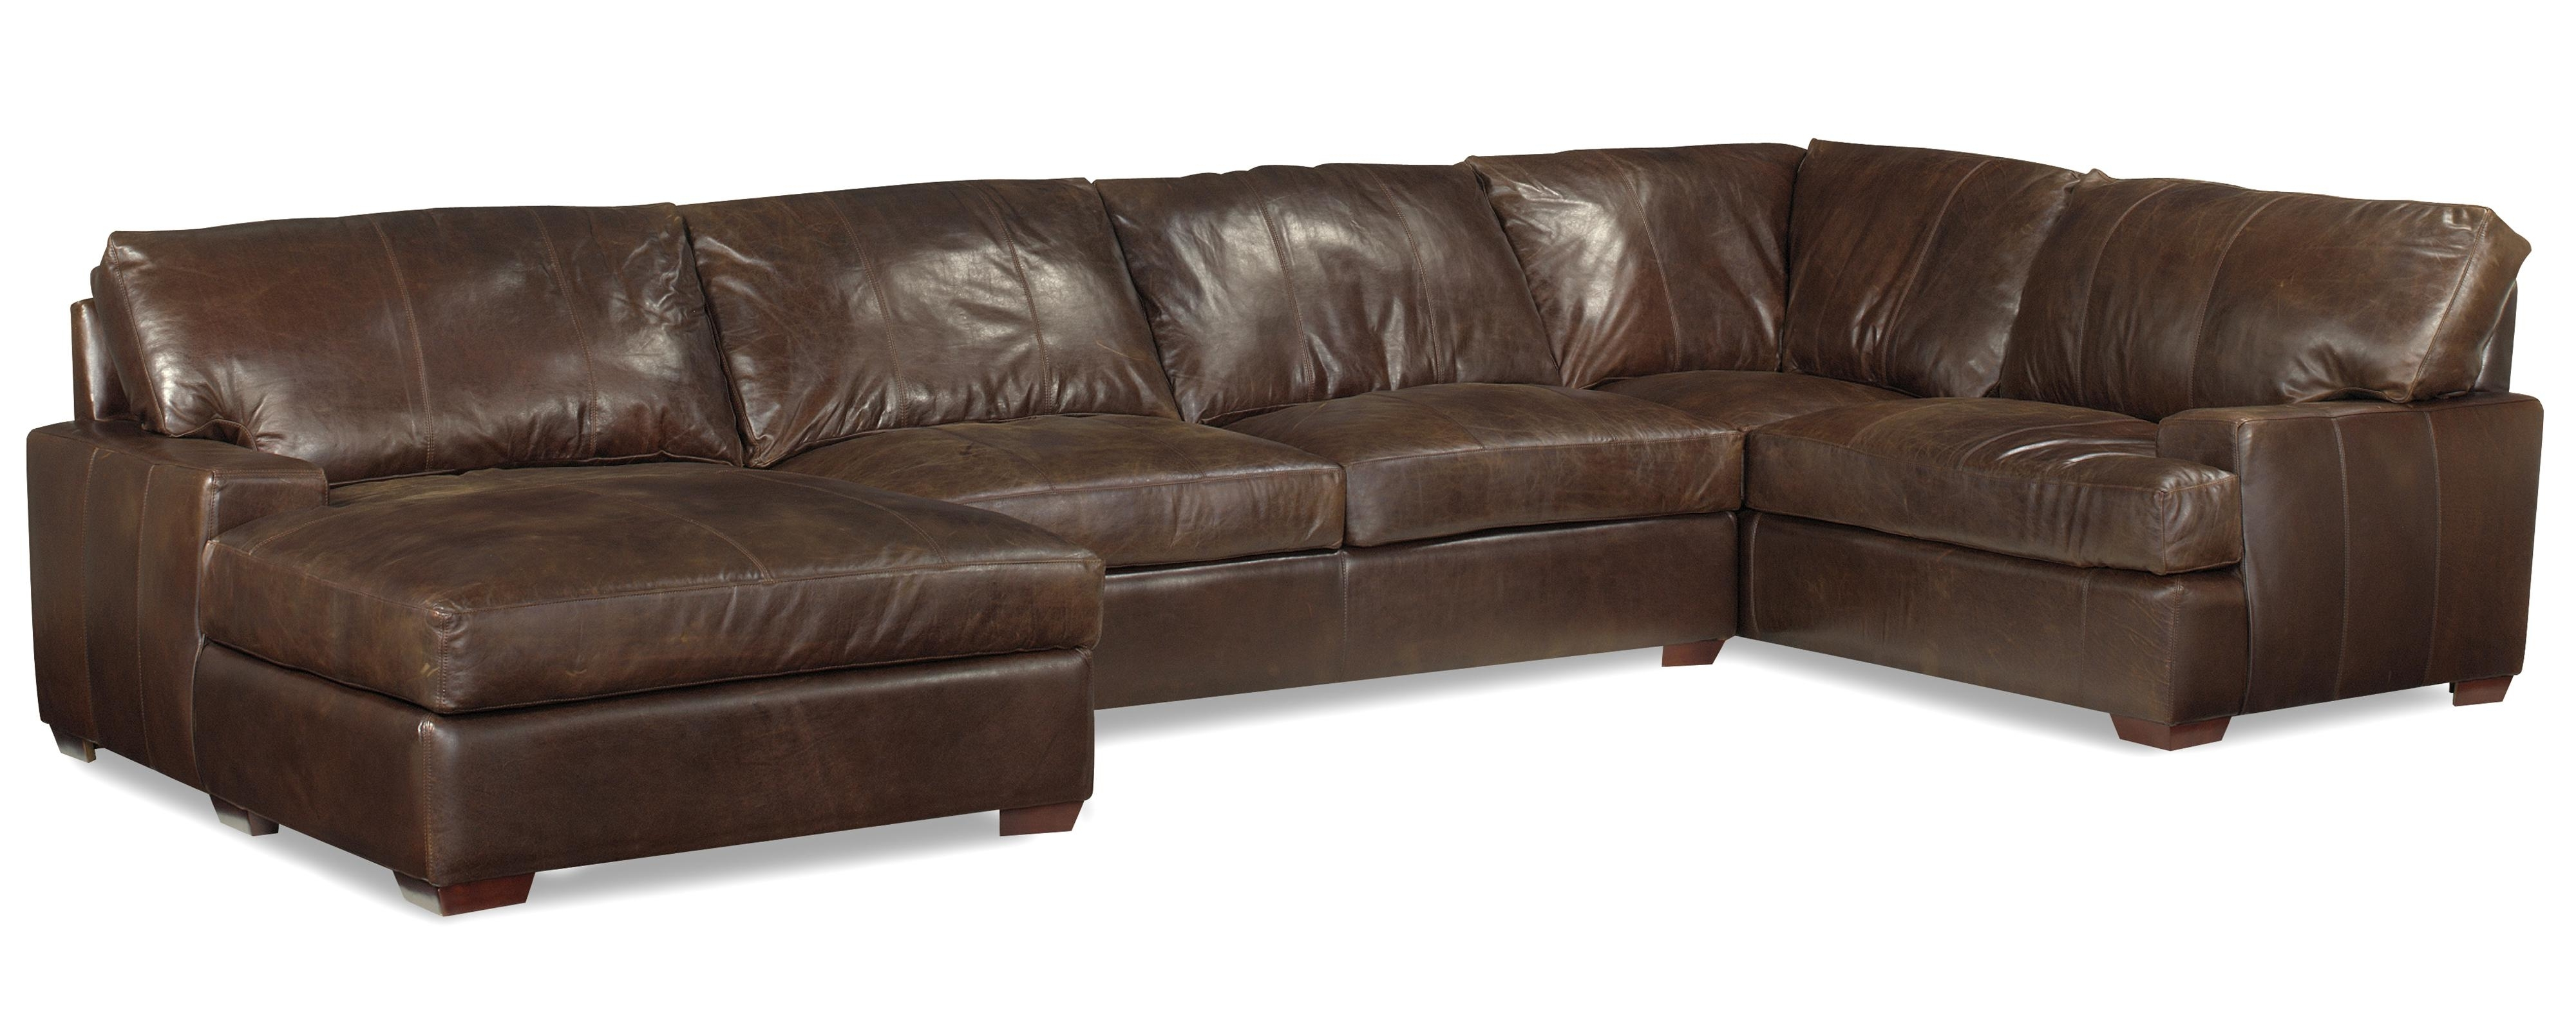 Trendy Couches With Chaise For Usa Premium Leather 3635 Track Arm Sofa Chaise Sectional W/ Block (View 13 of 15)